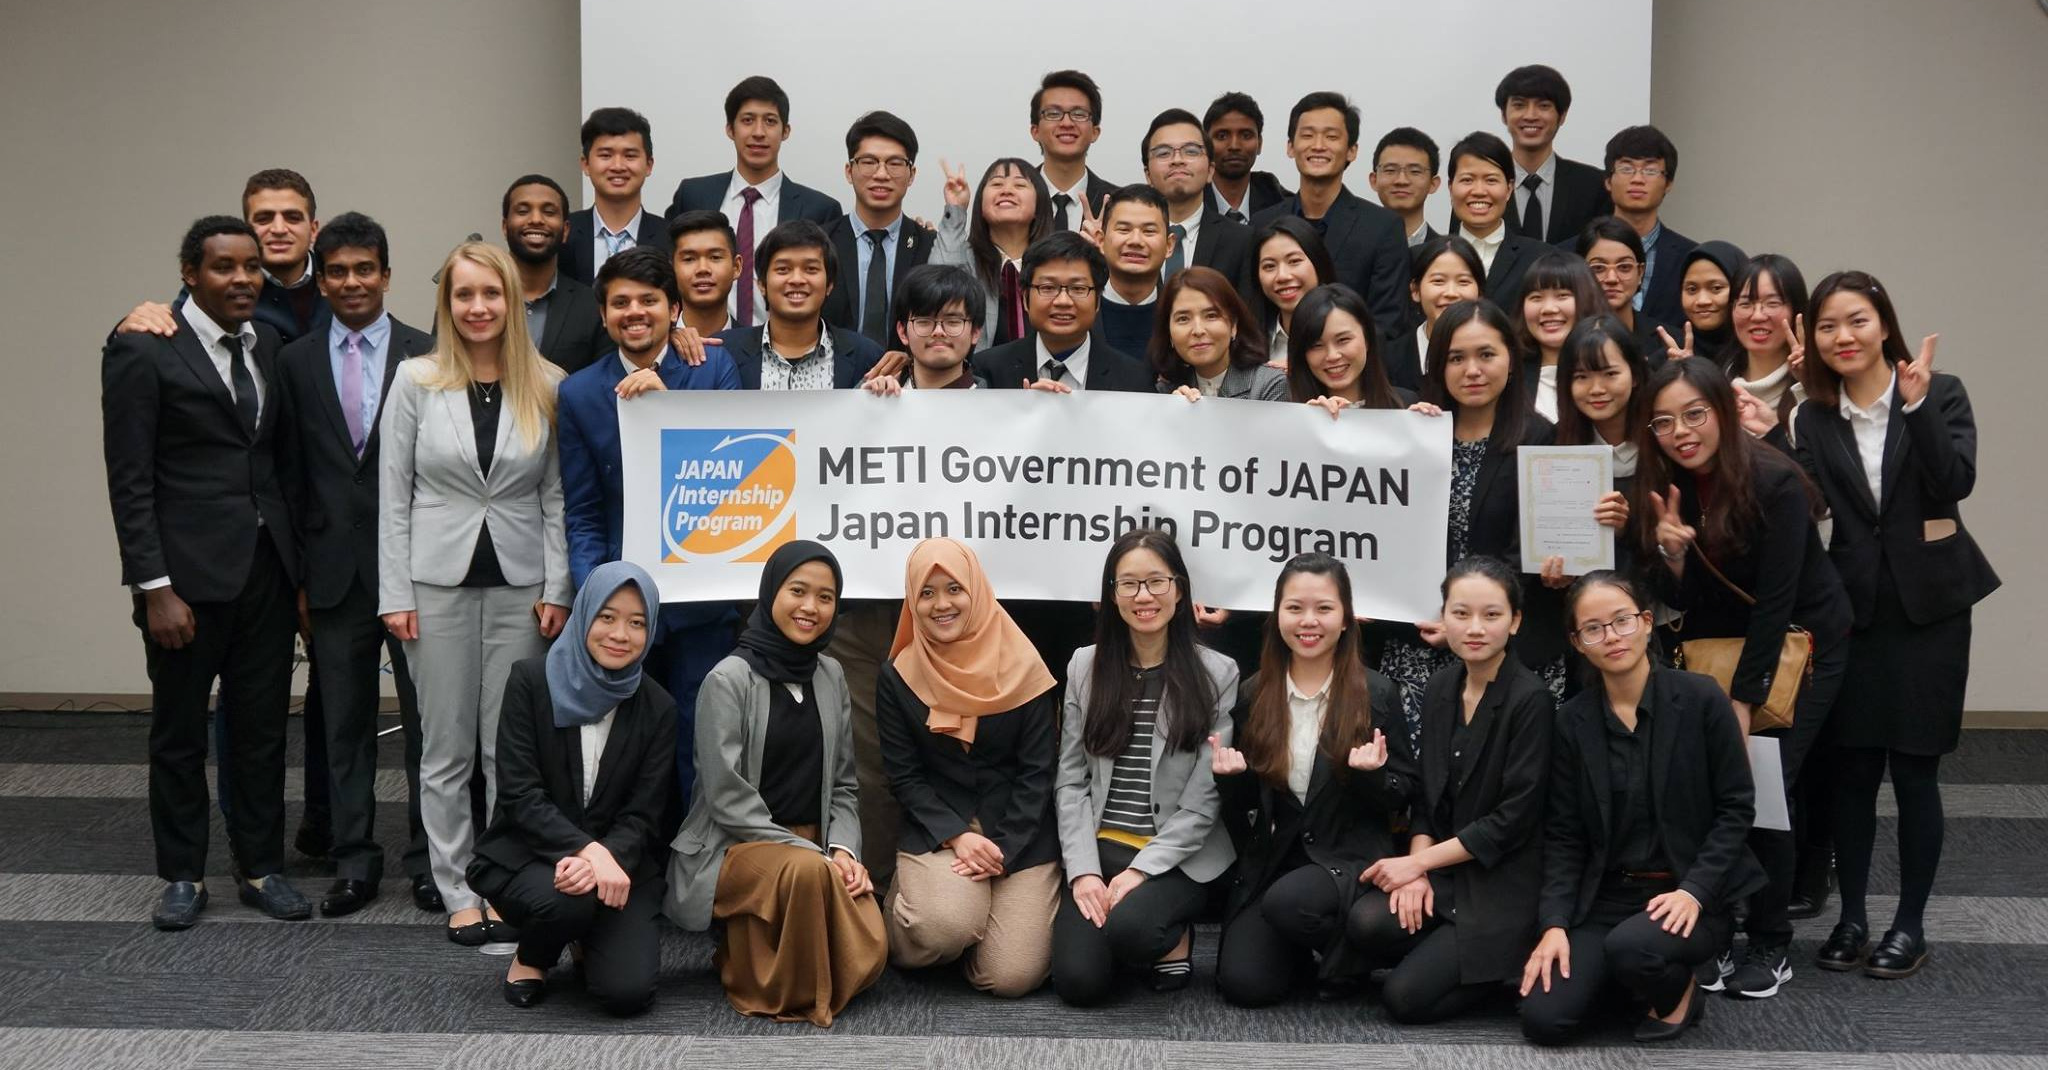 METI Government of Japan, Japan Internship Program 2019 (Ministry of Economy, Trade and Industry)